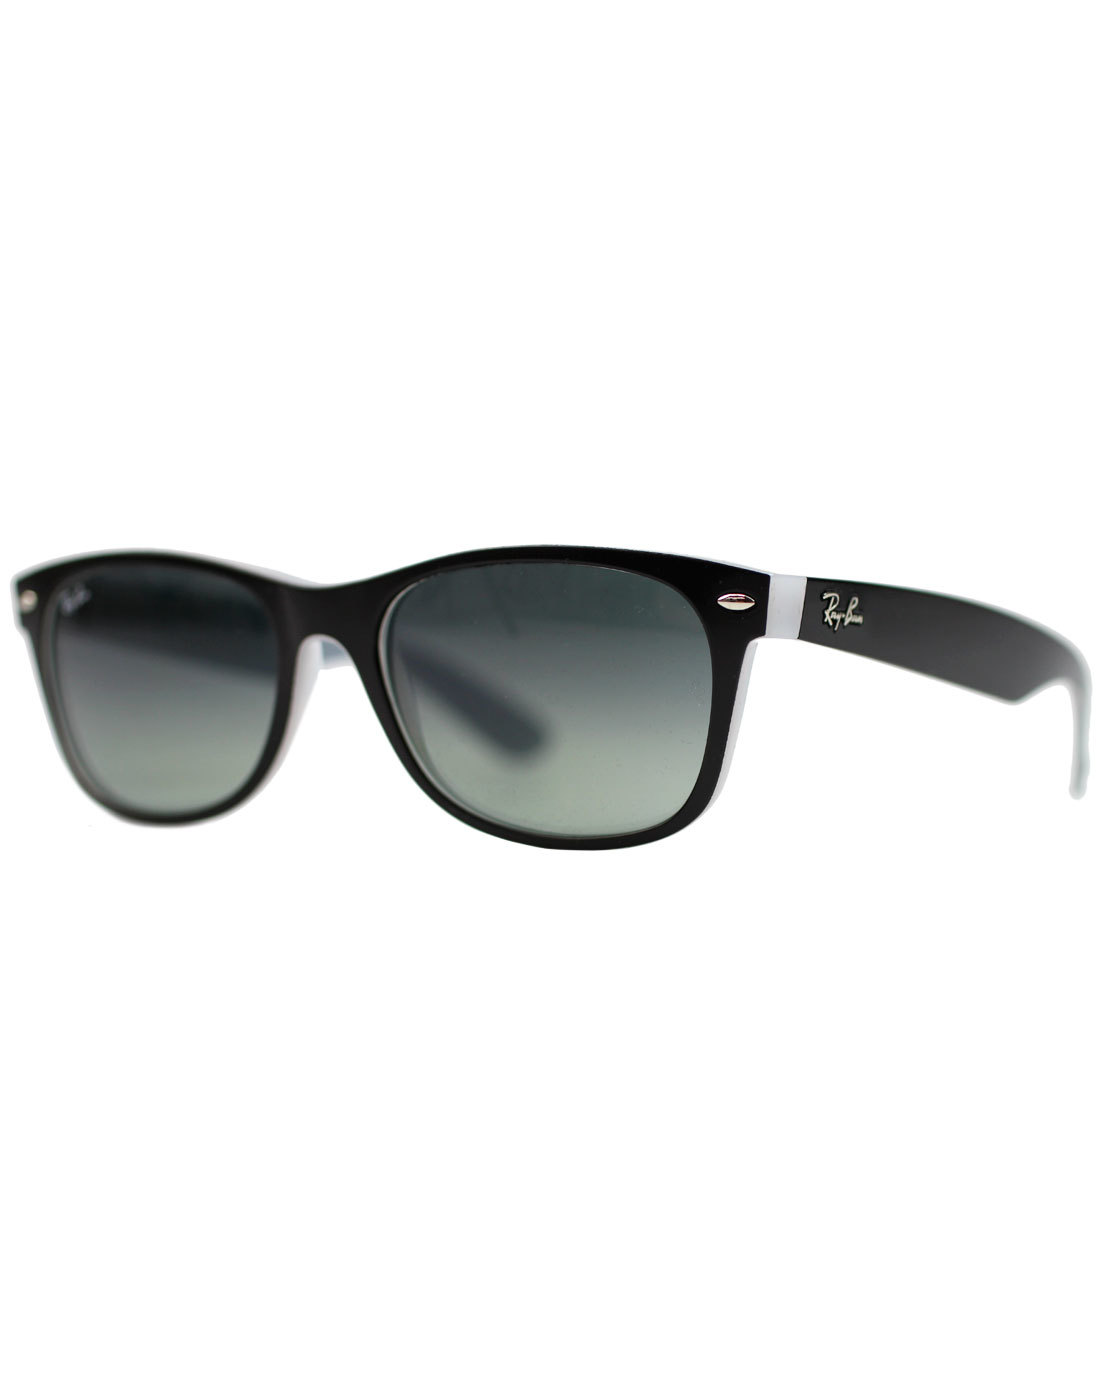 New Wayfarer RAY-BAN Retro Sunglasses - Black/Ice